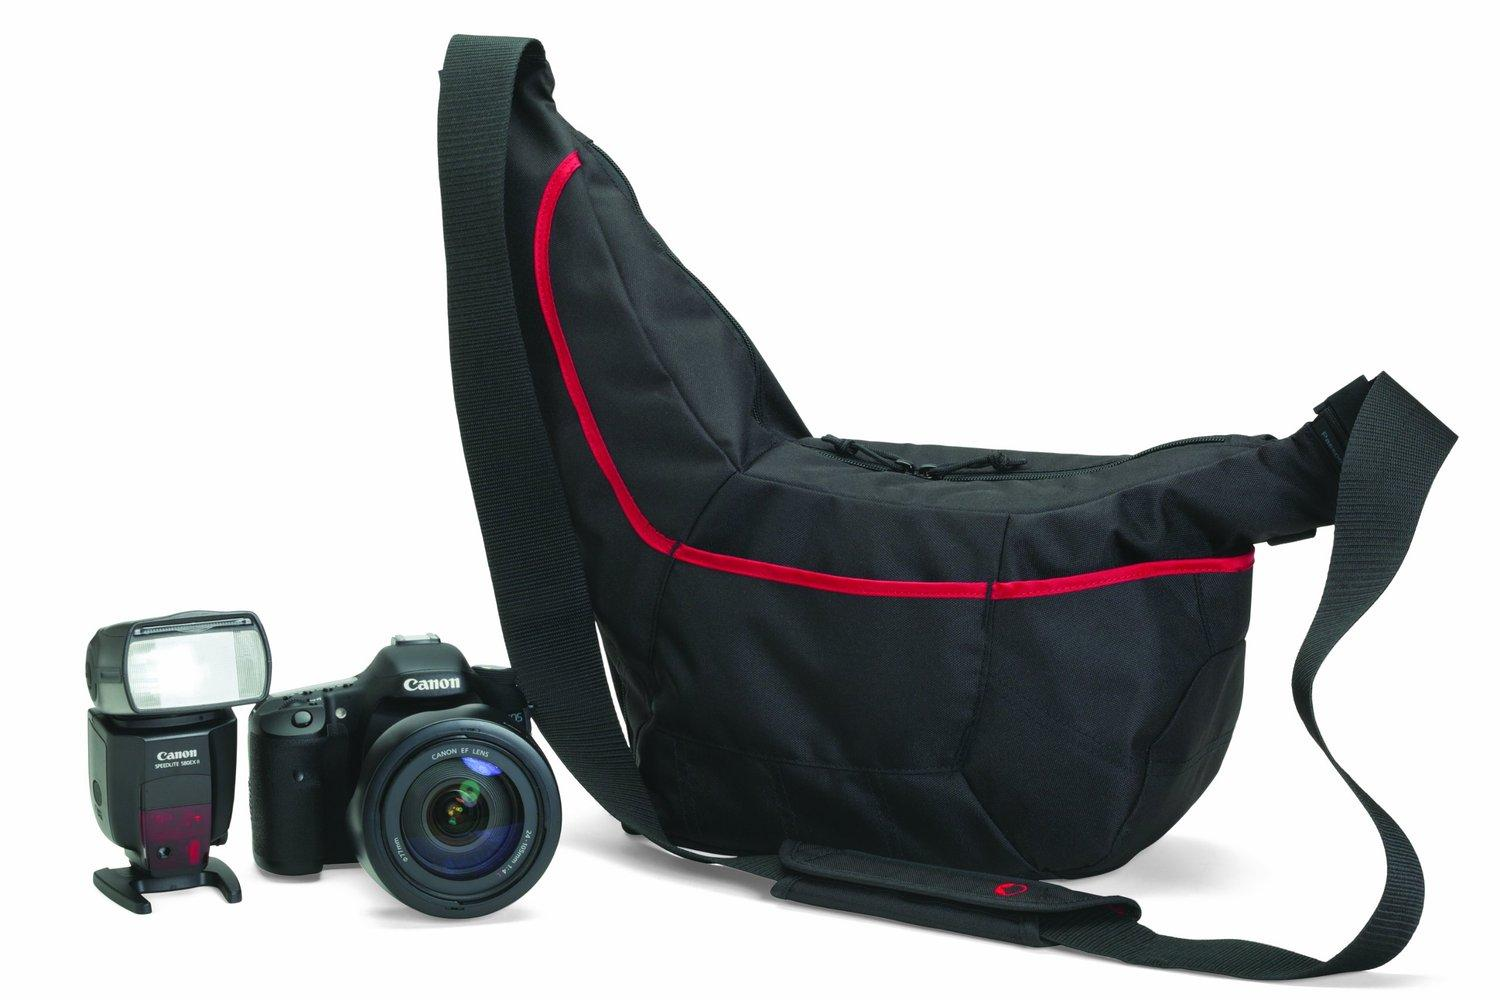 Lowepro Passport Sling II Camera Bag